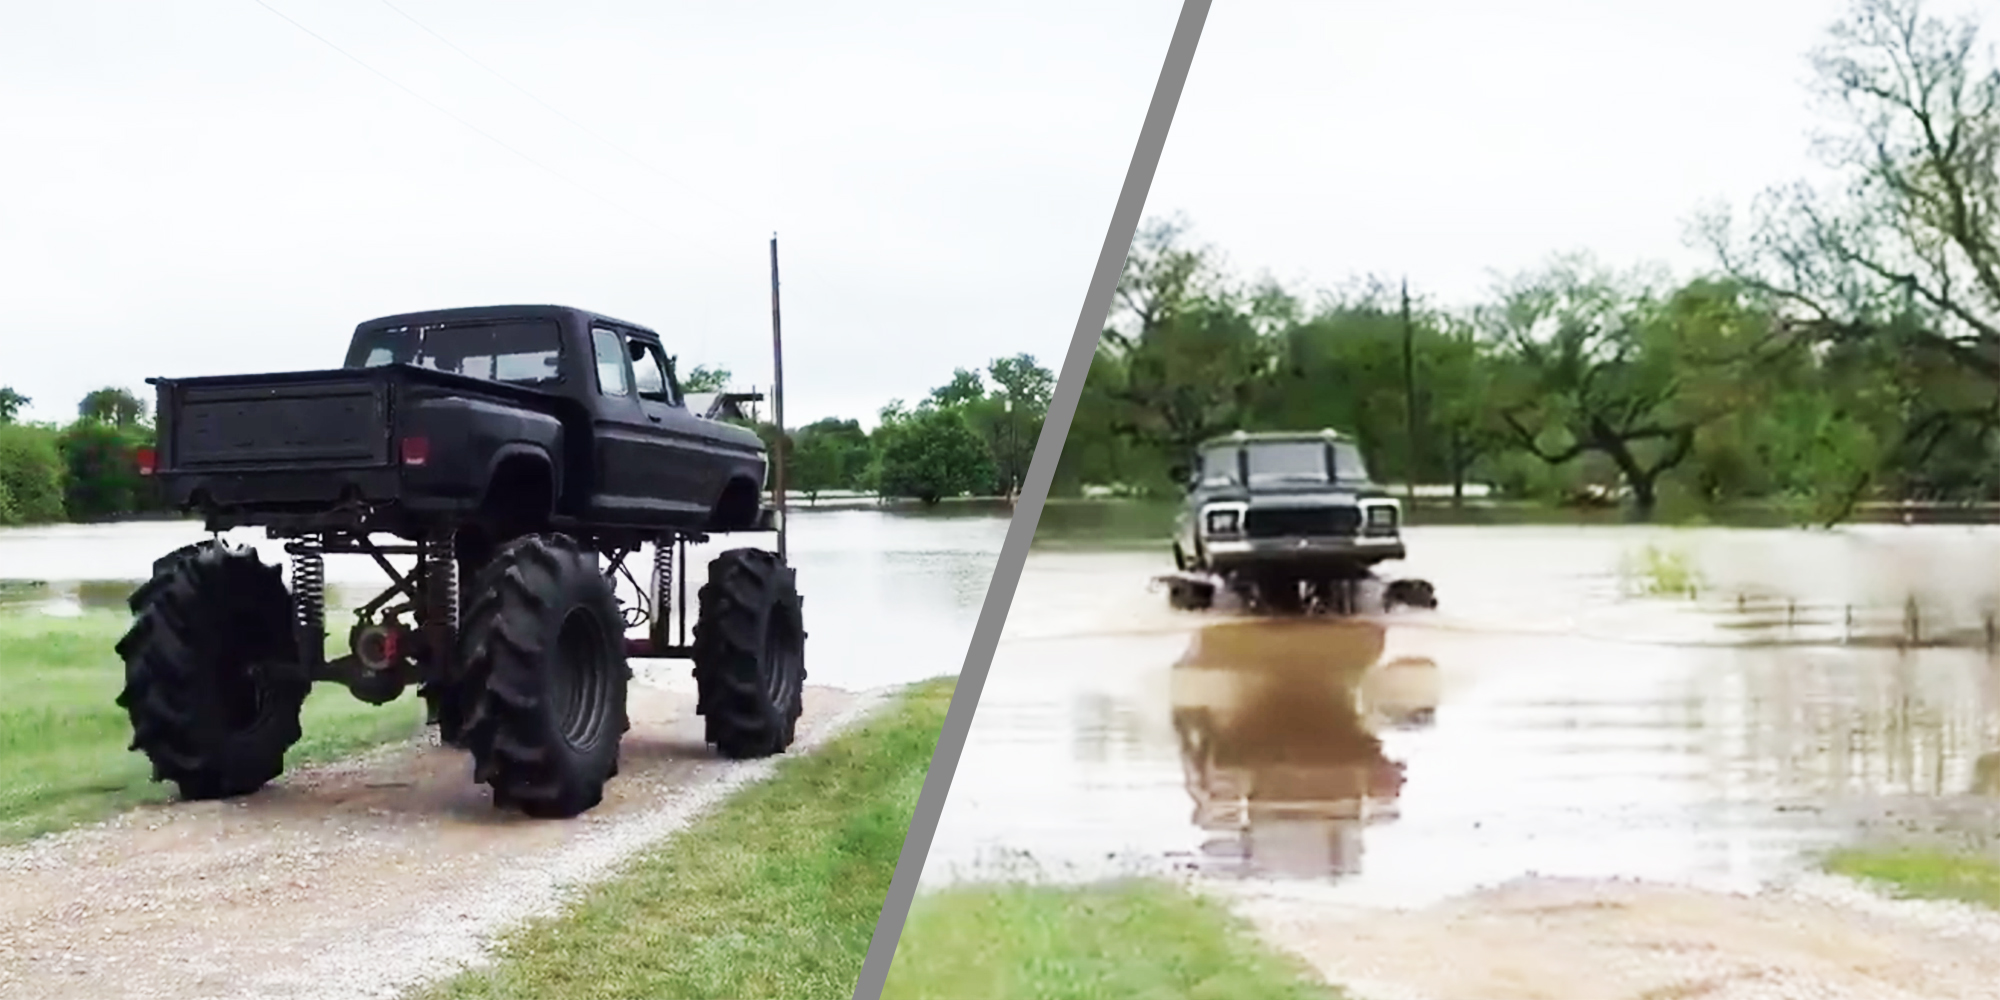 watch a monster truck hero save a stranded neighbor in